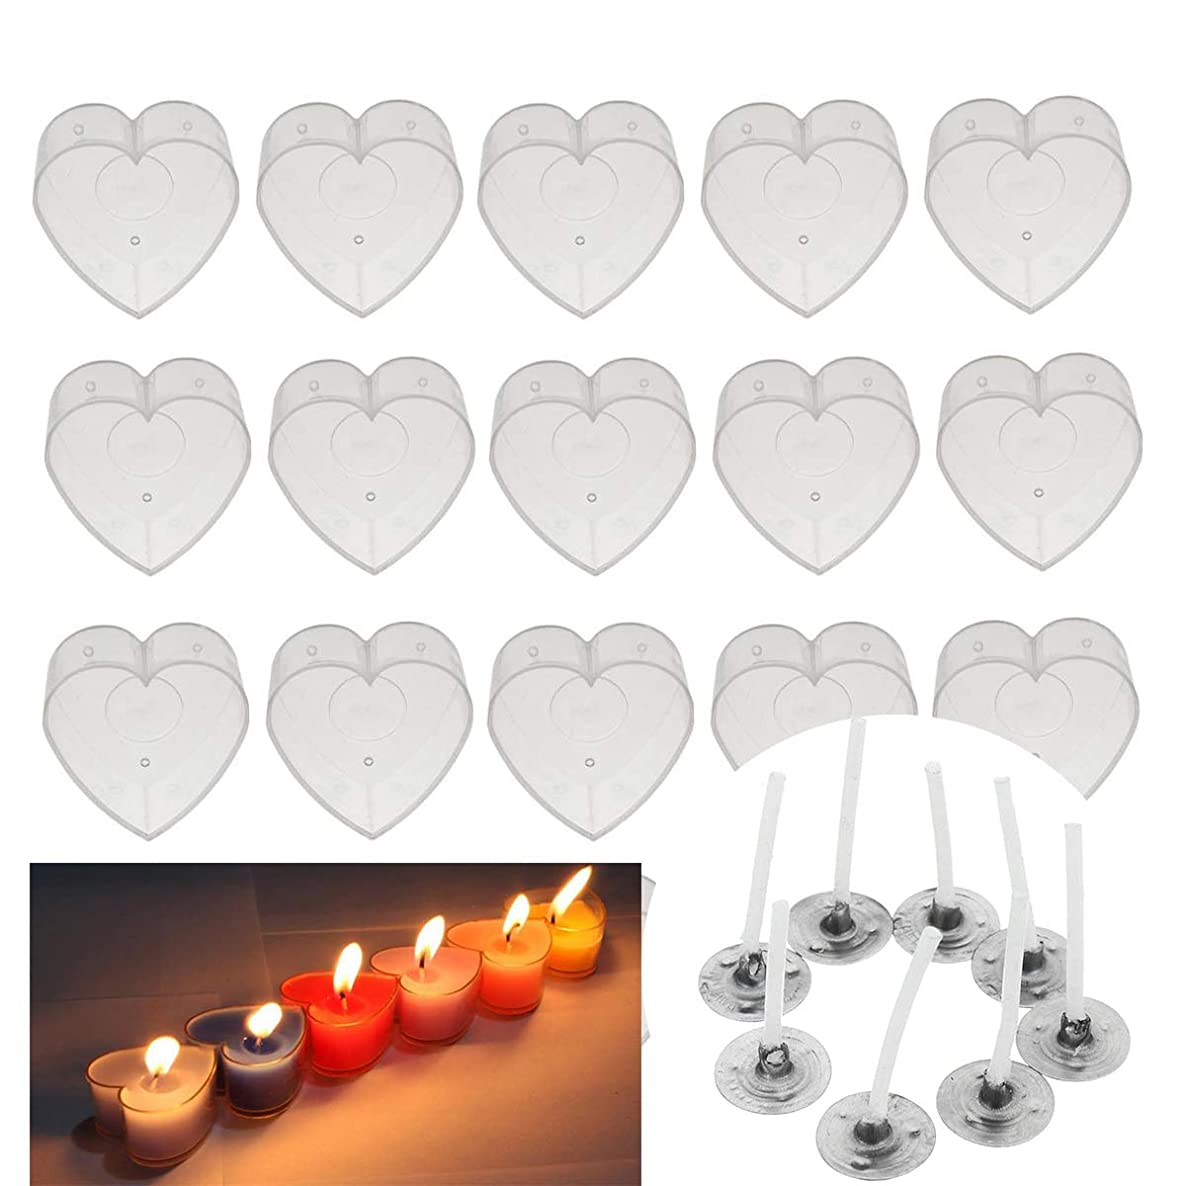 Chris.W 24 Pcs Plastic Clear Heart Tealight Cups Holders with 24 Pcs 25mm Candle Wicks for DIY Candle Making